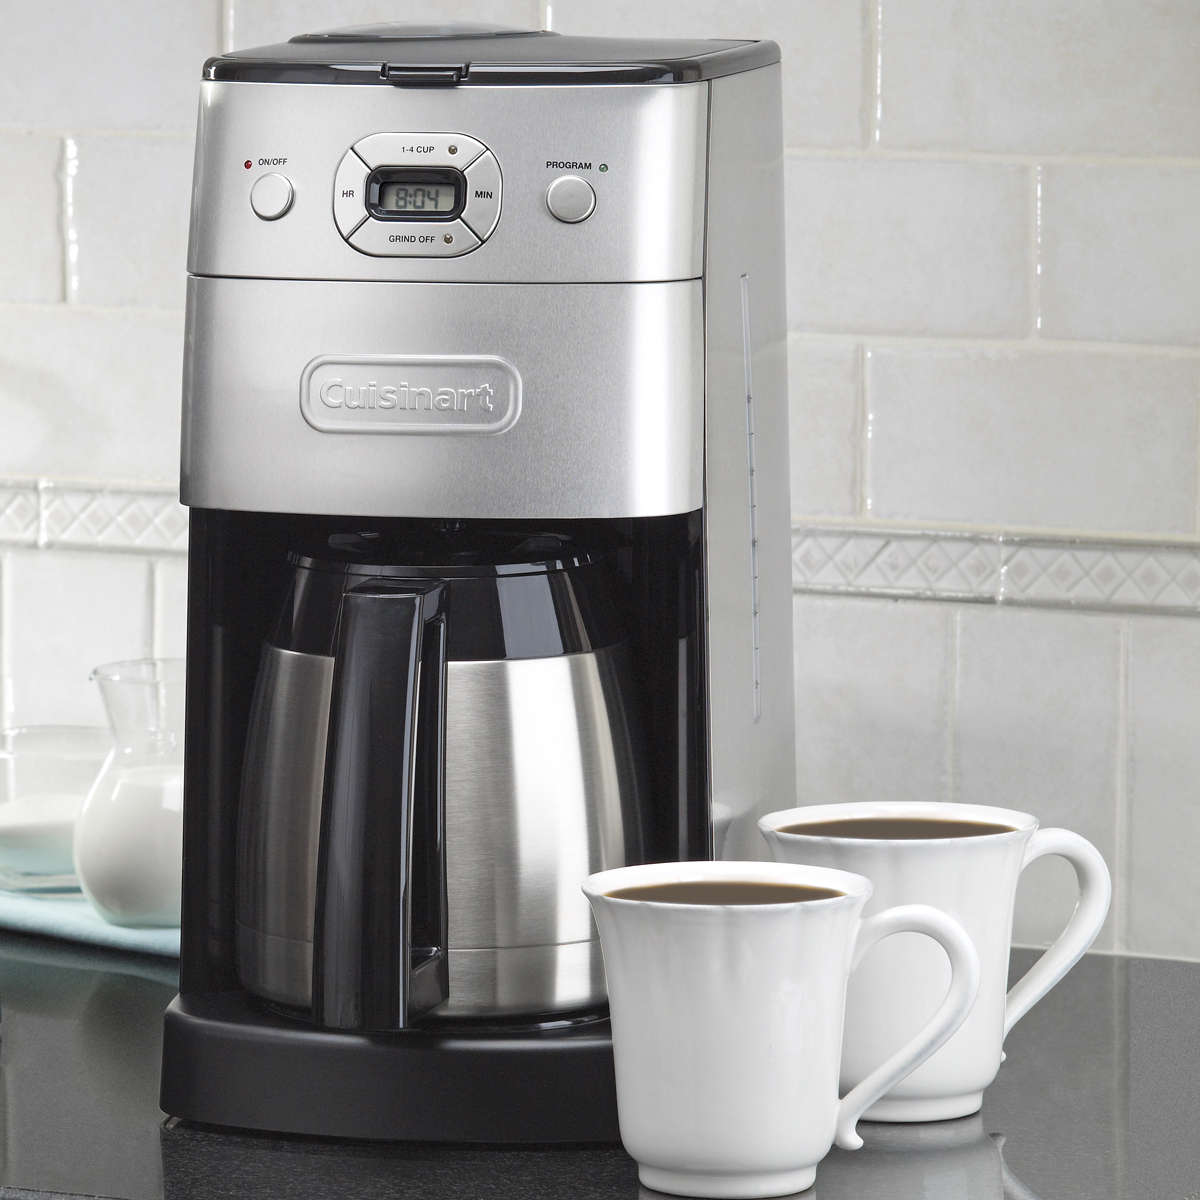 cafetiere avec moulin amazing machine caf delonghi machine expresso avec broyeur with cafetiere. Black Bedroom Furniture Sets. Home Design Ideas